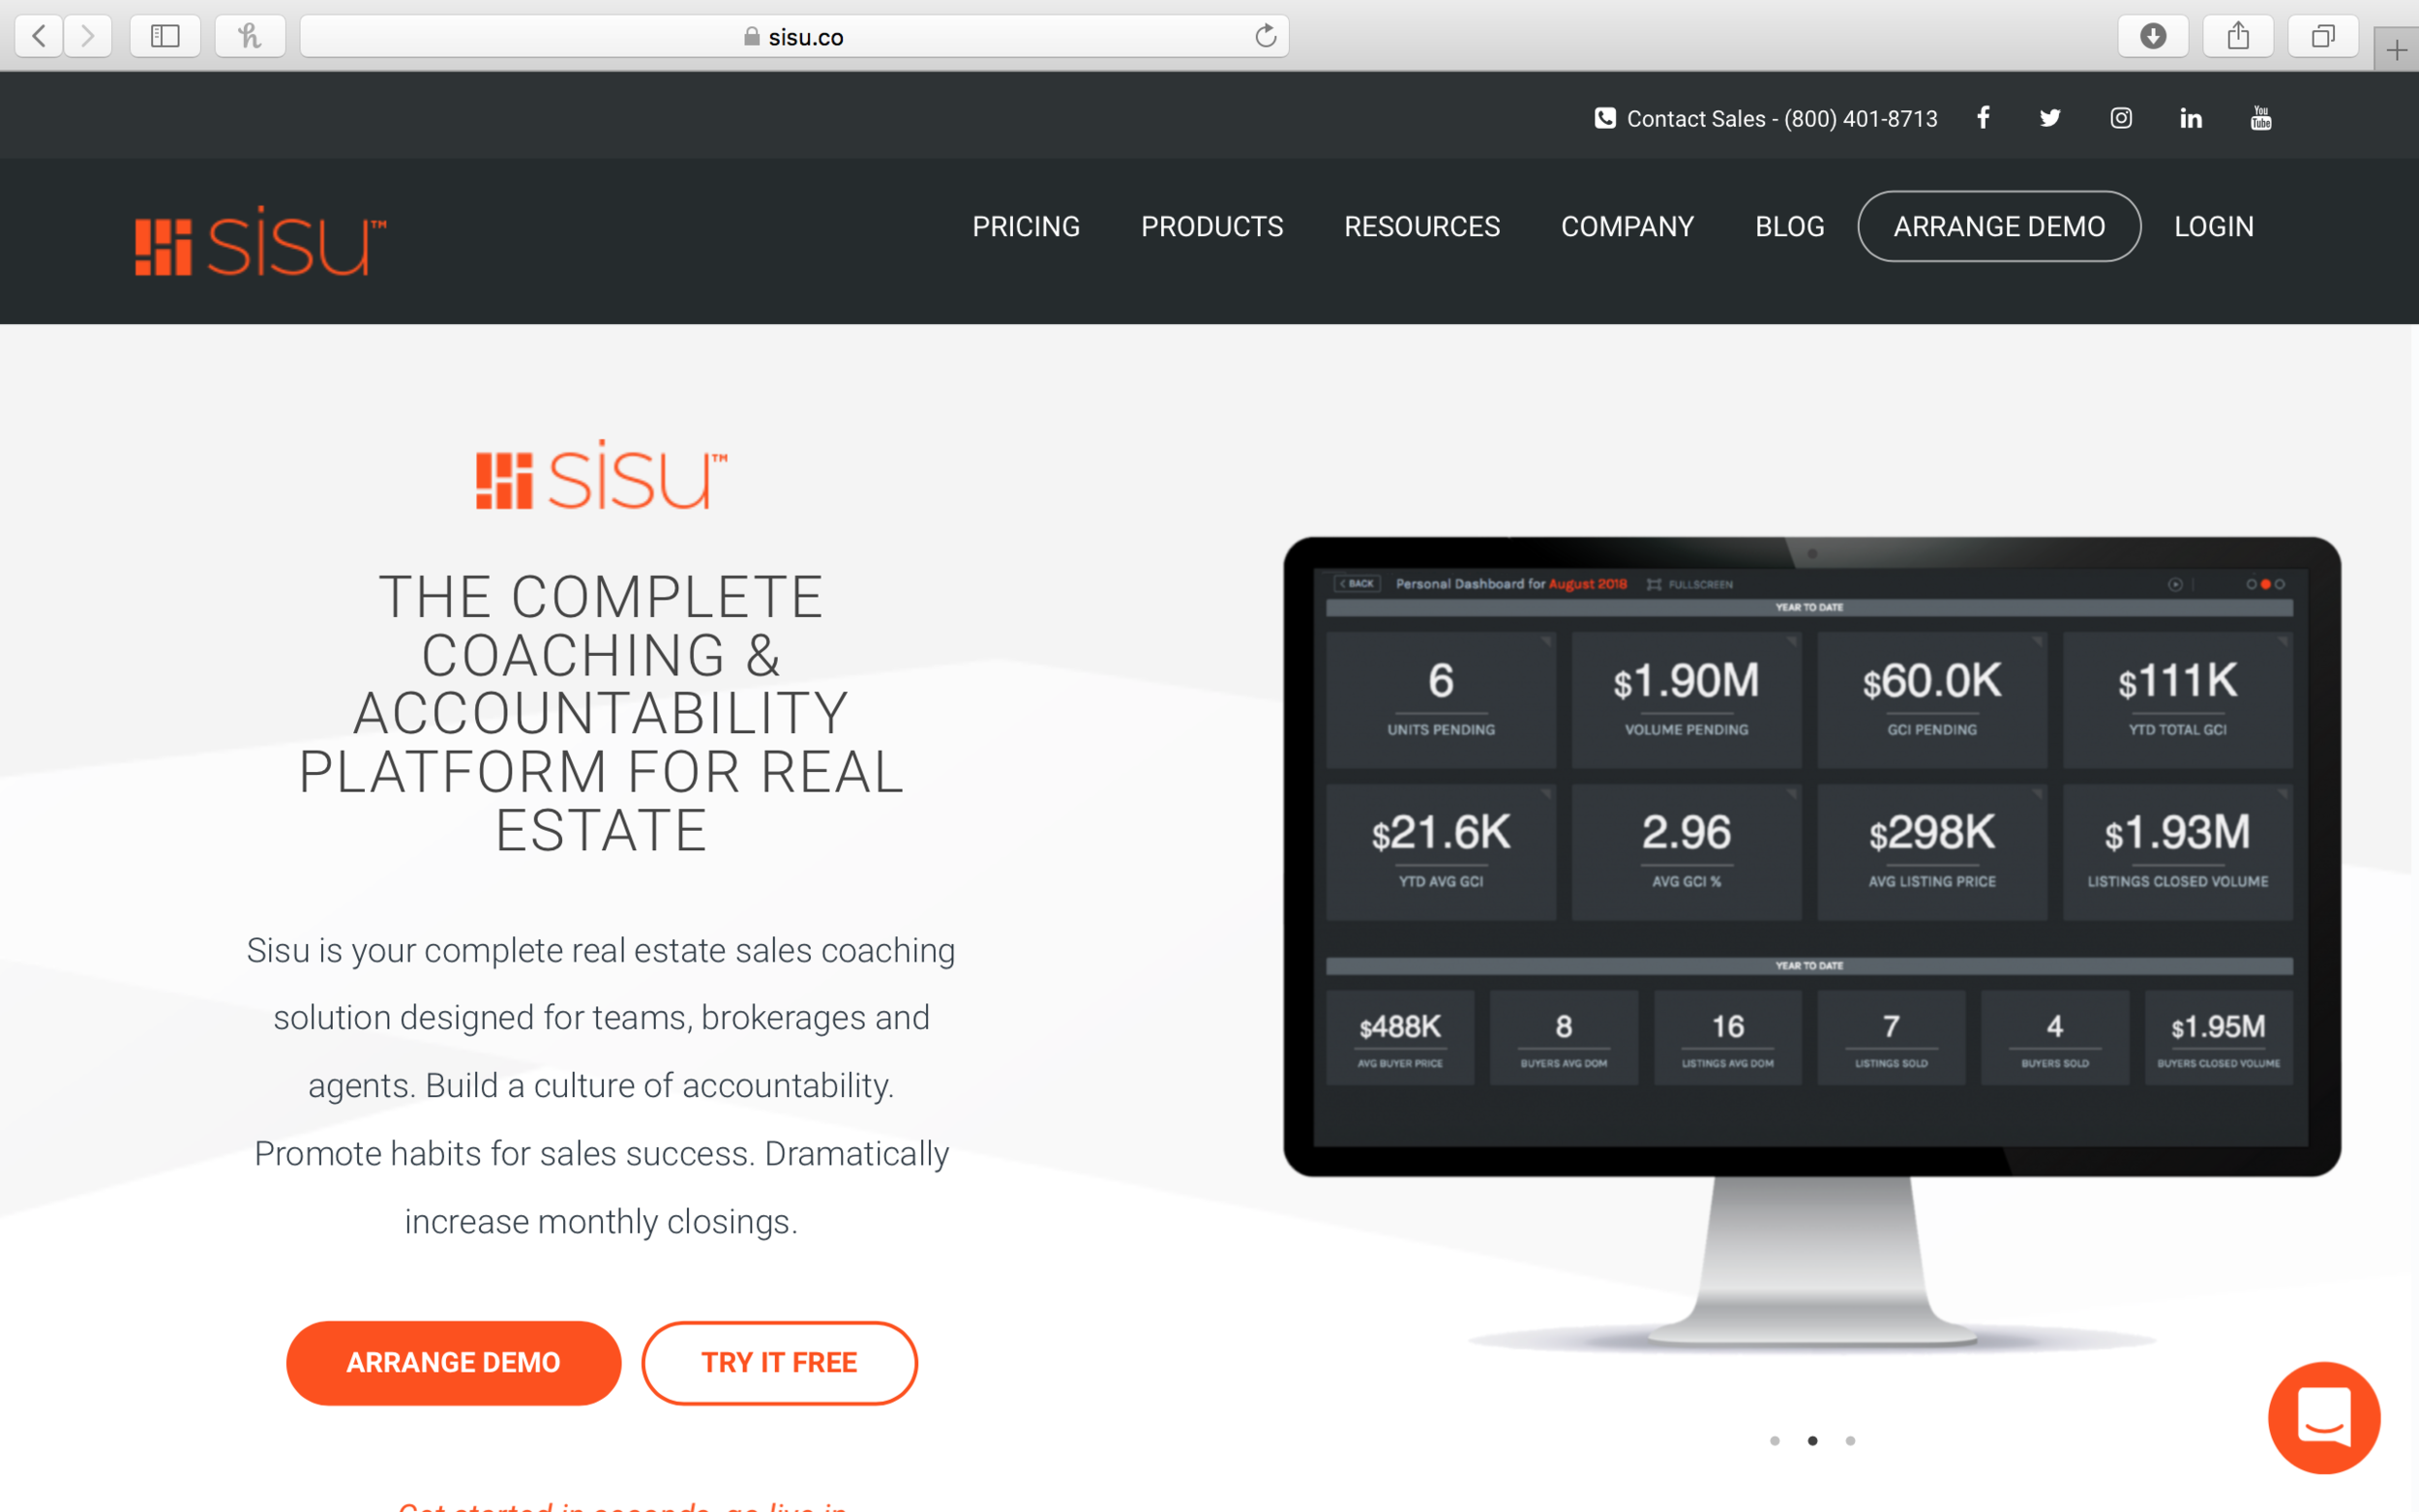 sisu - Sisu's platform helps companies easily visualize their data in order to manage key performance indicators. Companies are able to replace manual spreadsheets and provide dashboards to help manage performance across the organization.